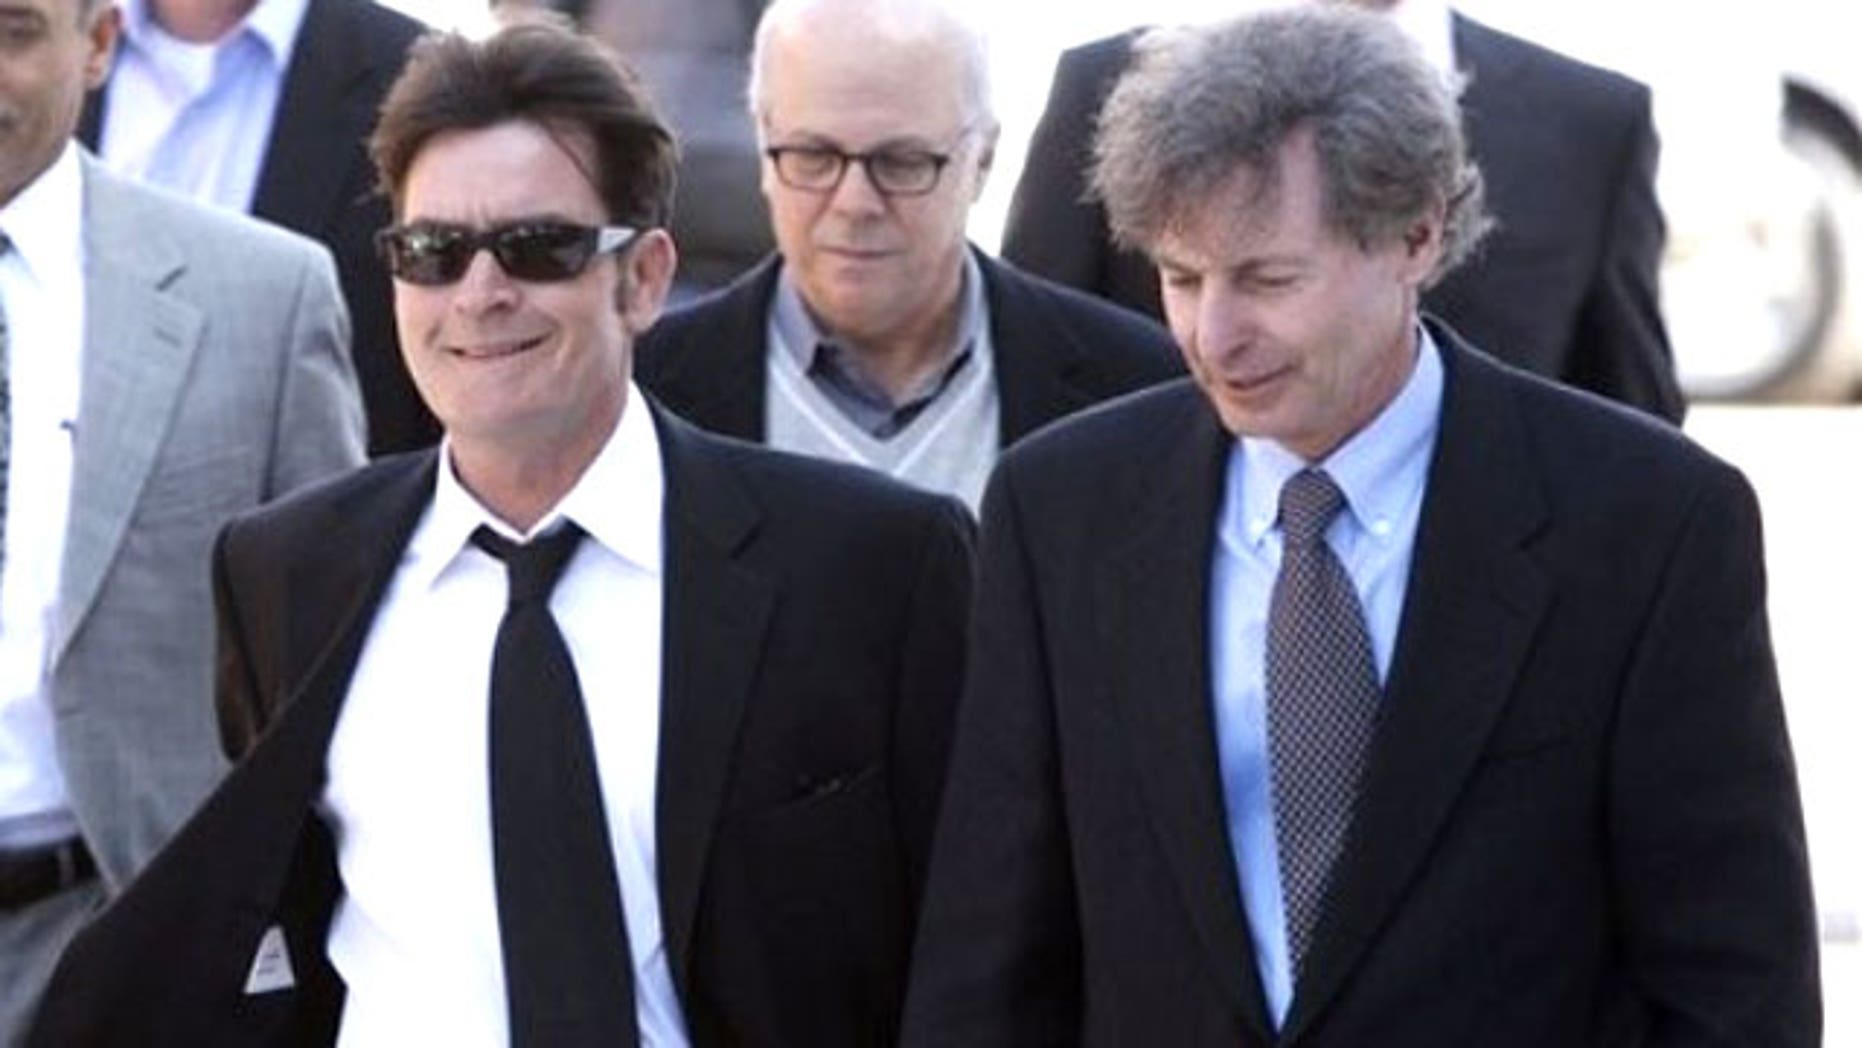 Charlie Sheen (left) and his lawyer leave a court hearing.